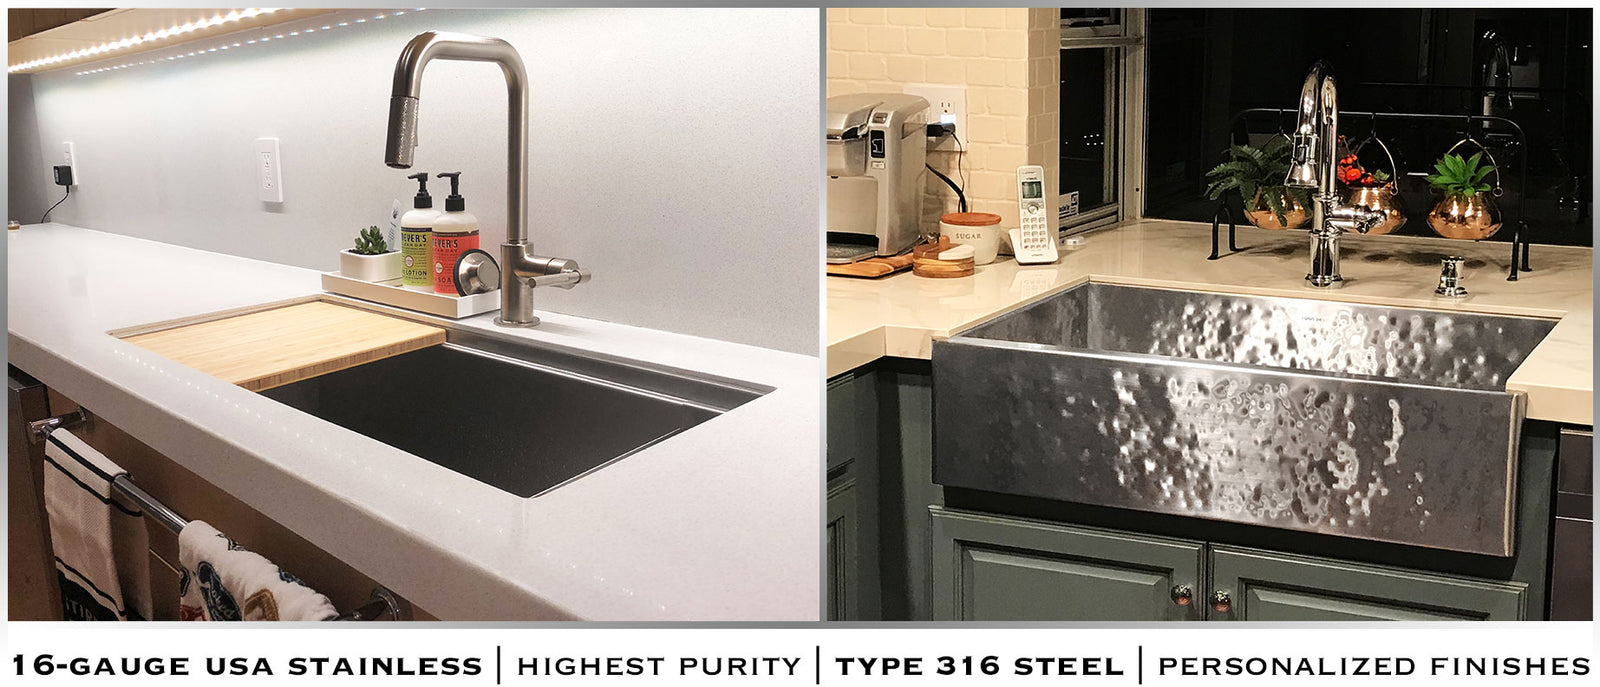 Undermount Stainless Steel Sinks Usa Crafted Havens Luxury Metals